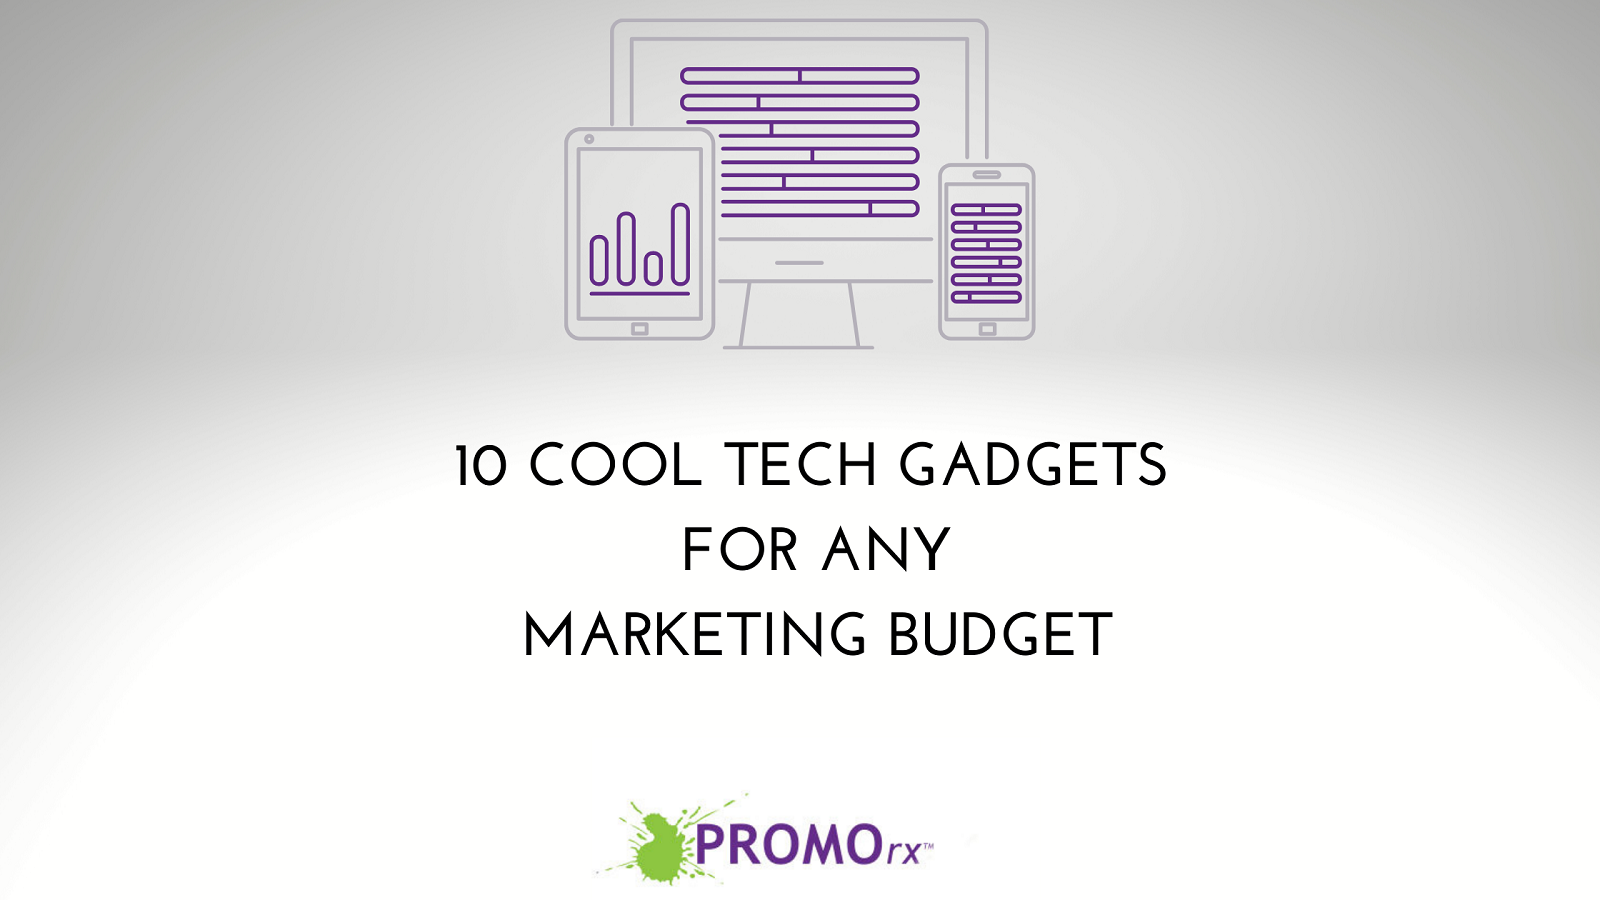 10 Cool Tech Gadgets for Any Marketing Budget